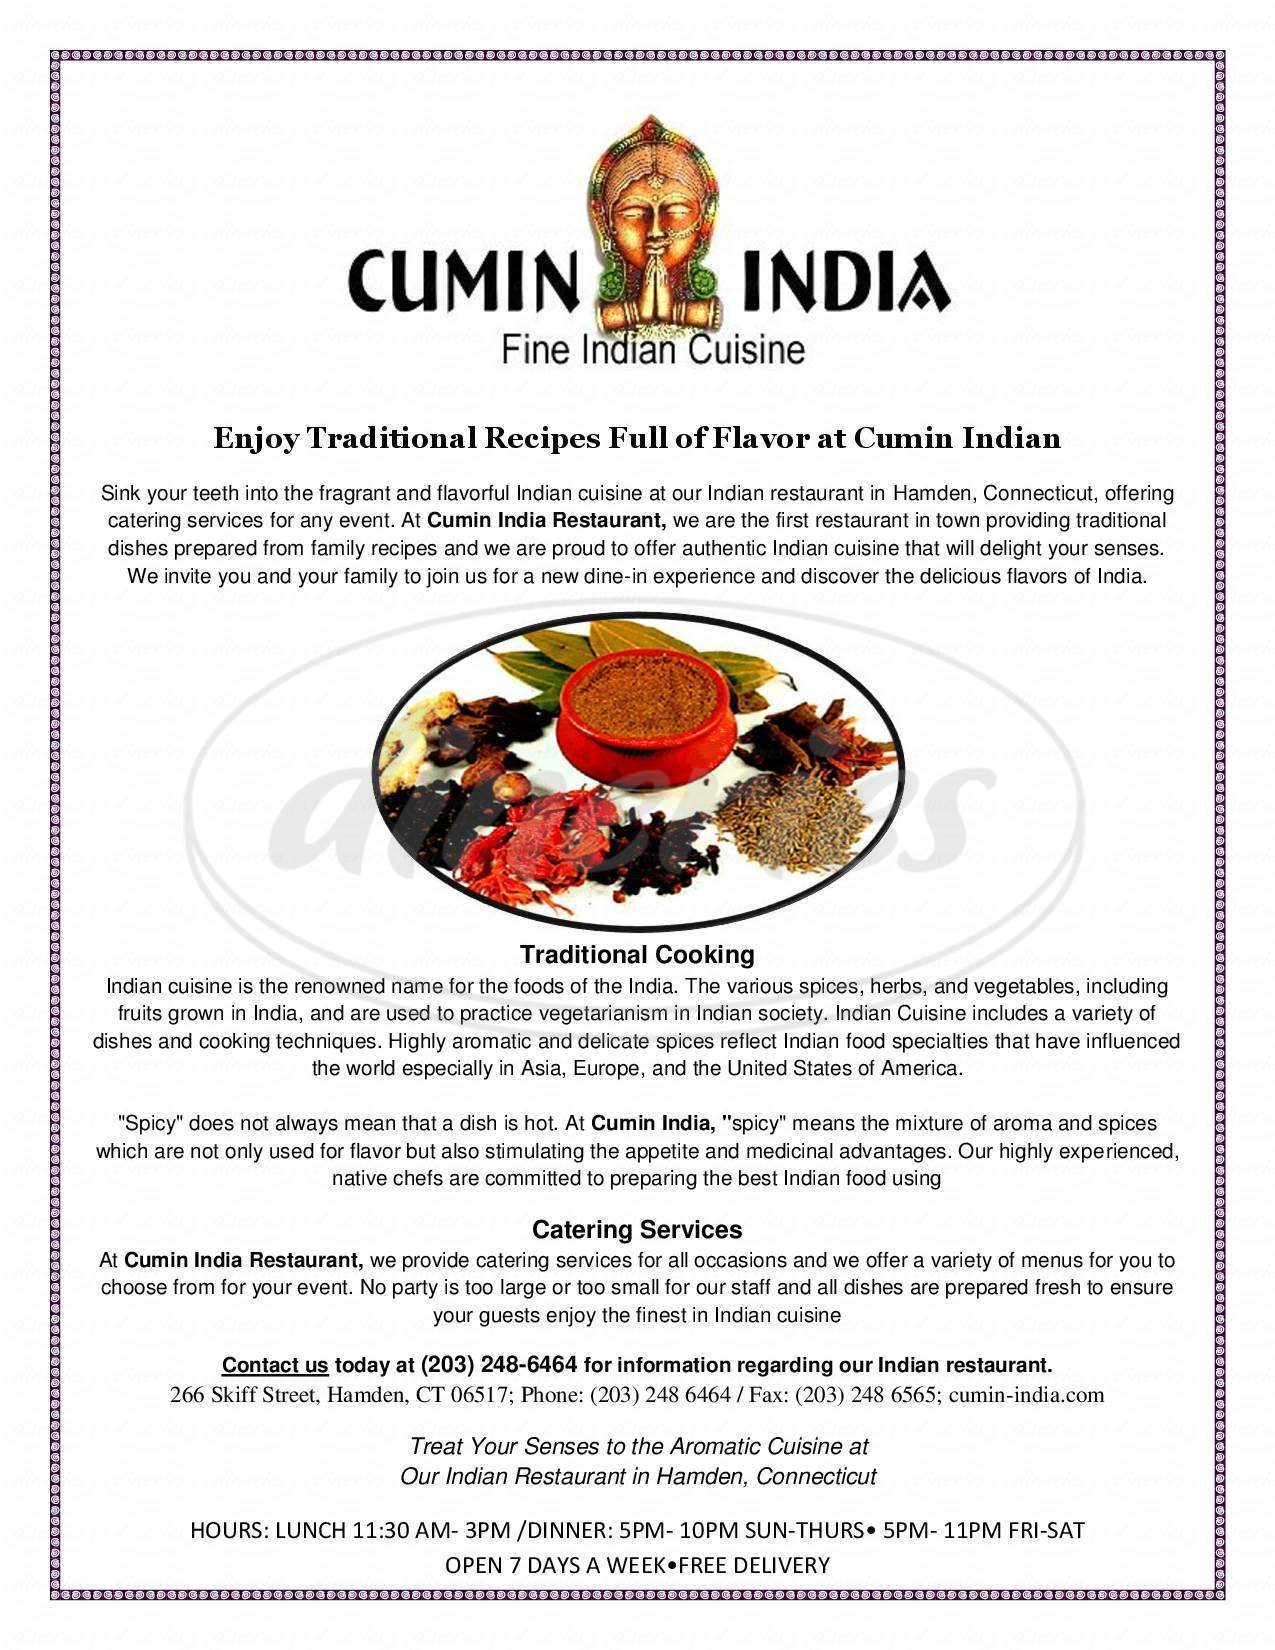 menu for Cumin India